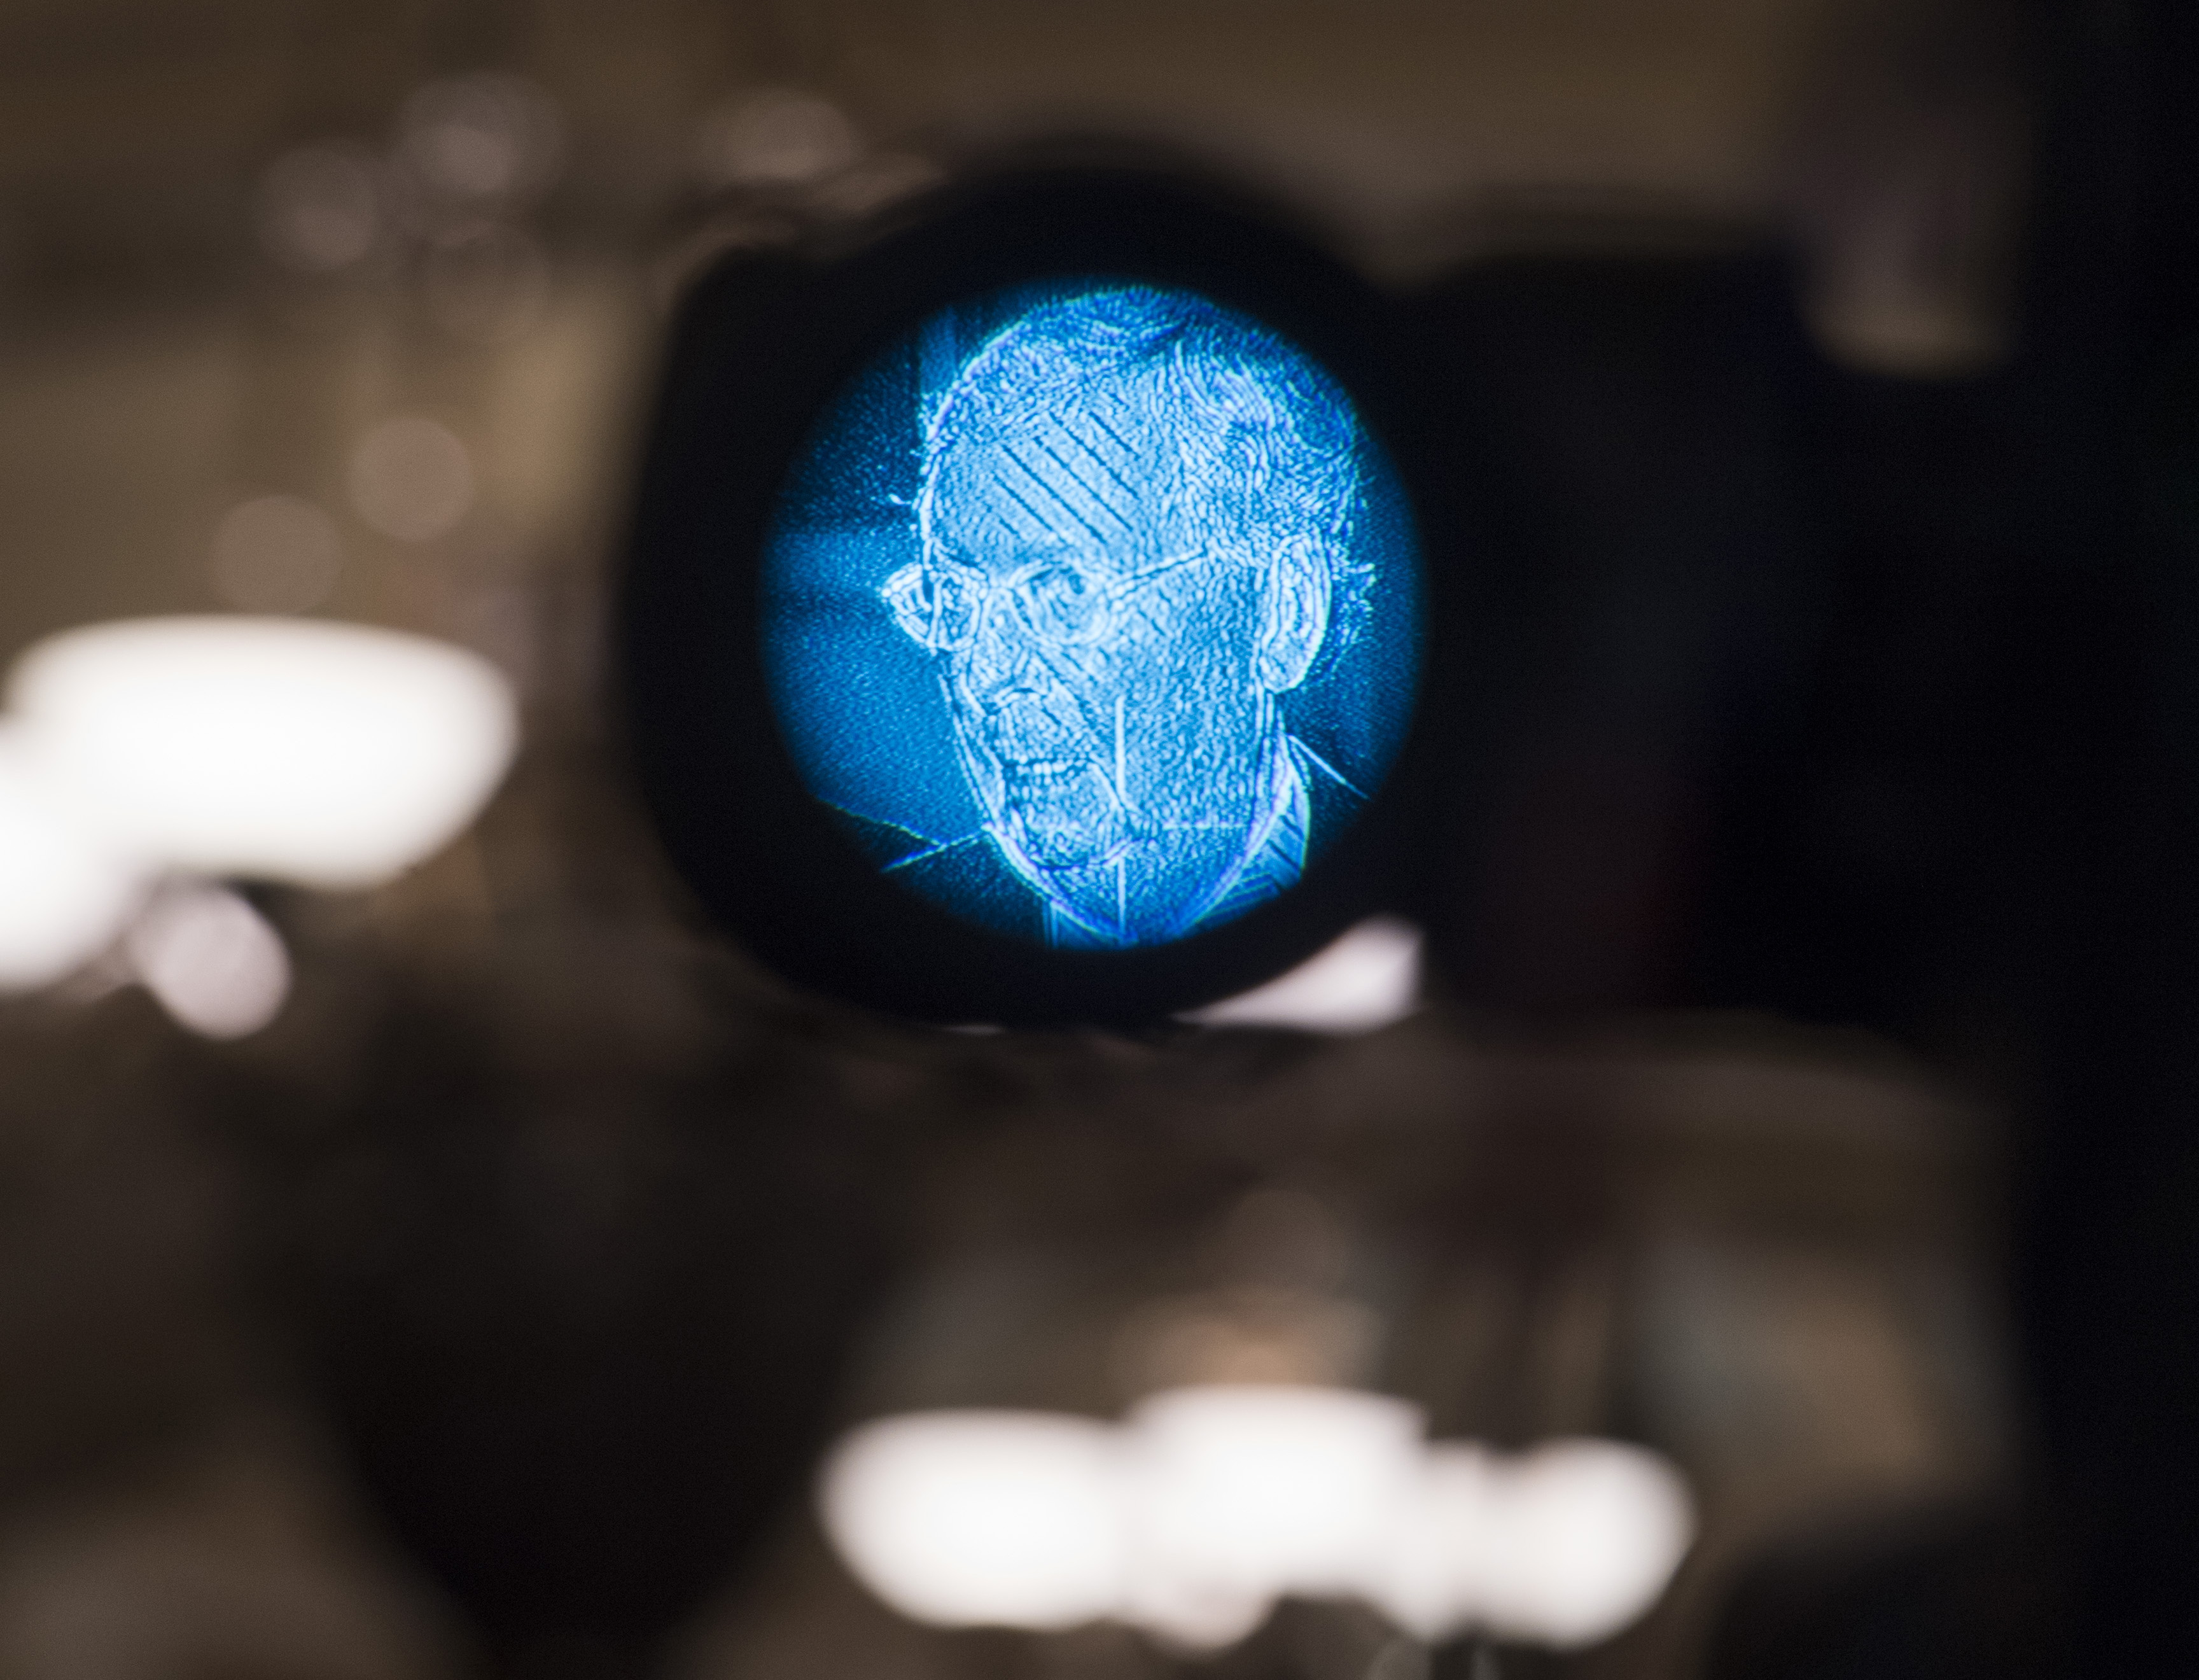 UNITED STATES - JUNE 4: Senate Majority Leader Mitch McConnell, R-Ky., is seen through a television camera during a news conference after the Senate Policy luncheons in the Capitol on Tuesday, June 4, 2019. (Photo By Tom Williams/CQ Roll Call)